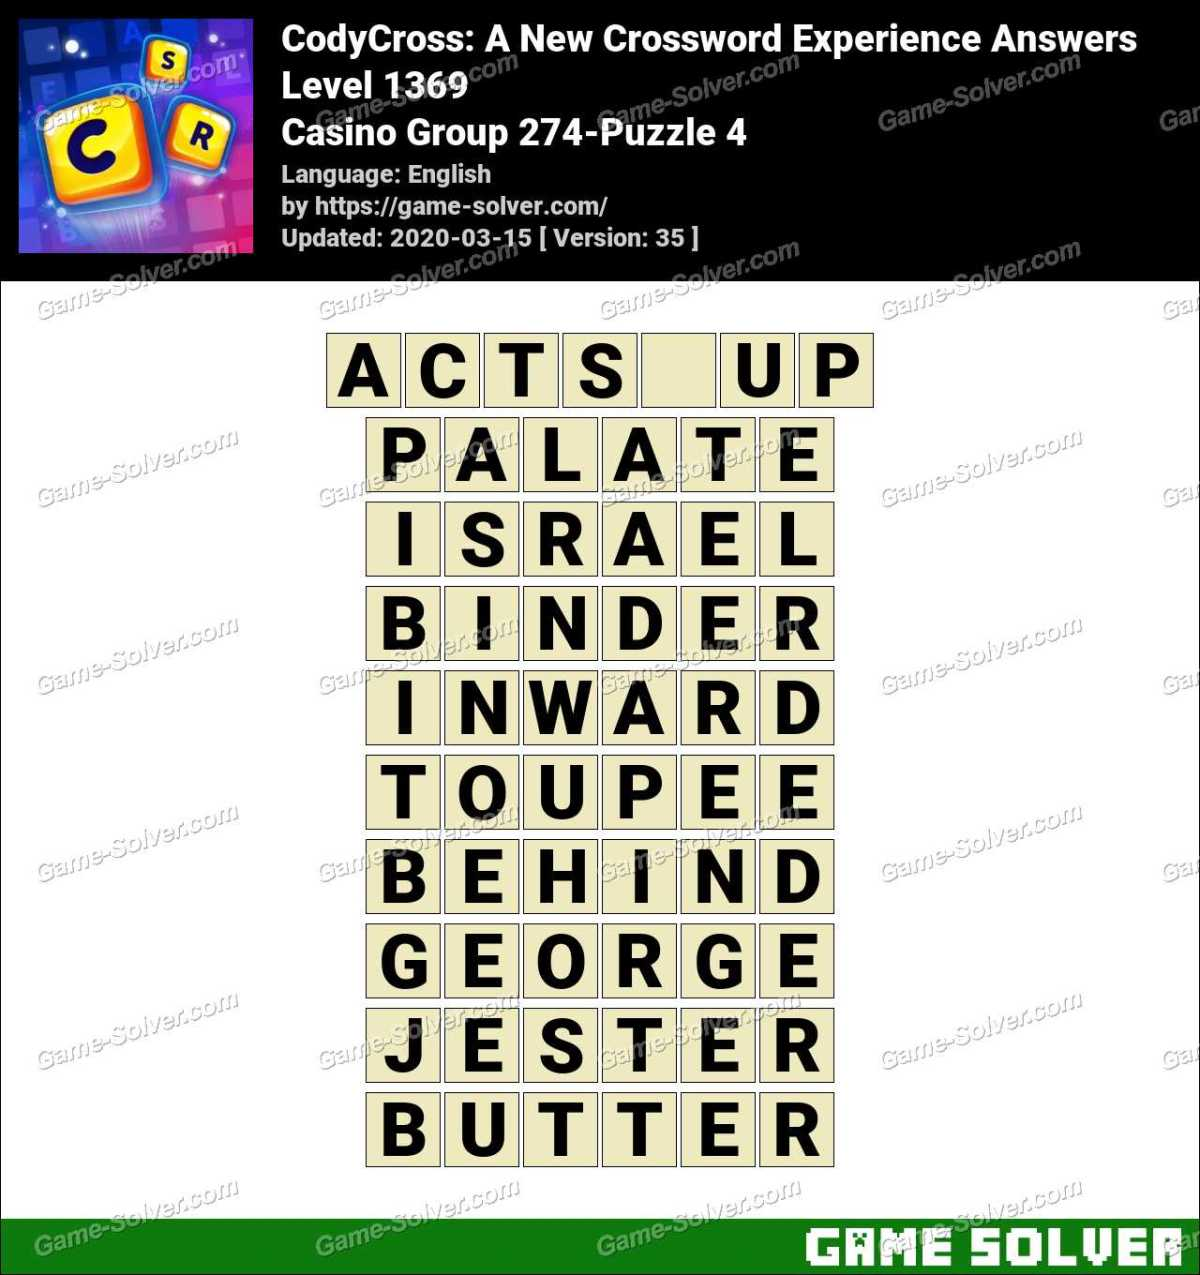 CodyCross Casino Group 274-Puzzle 4 Answers